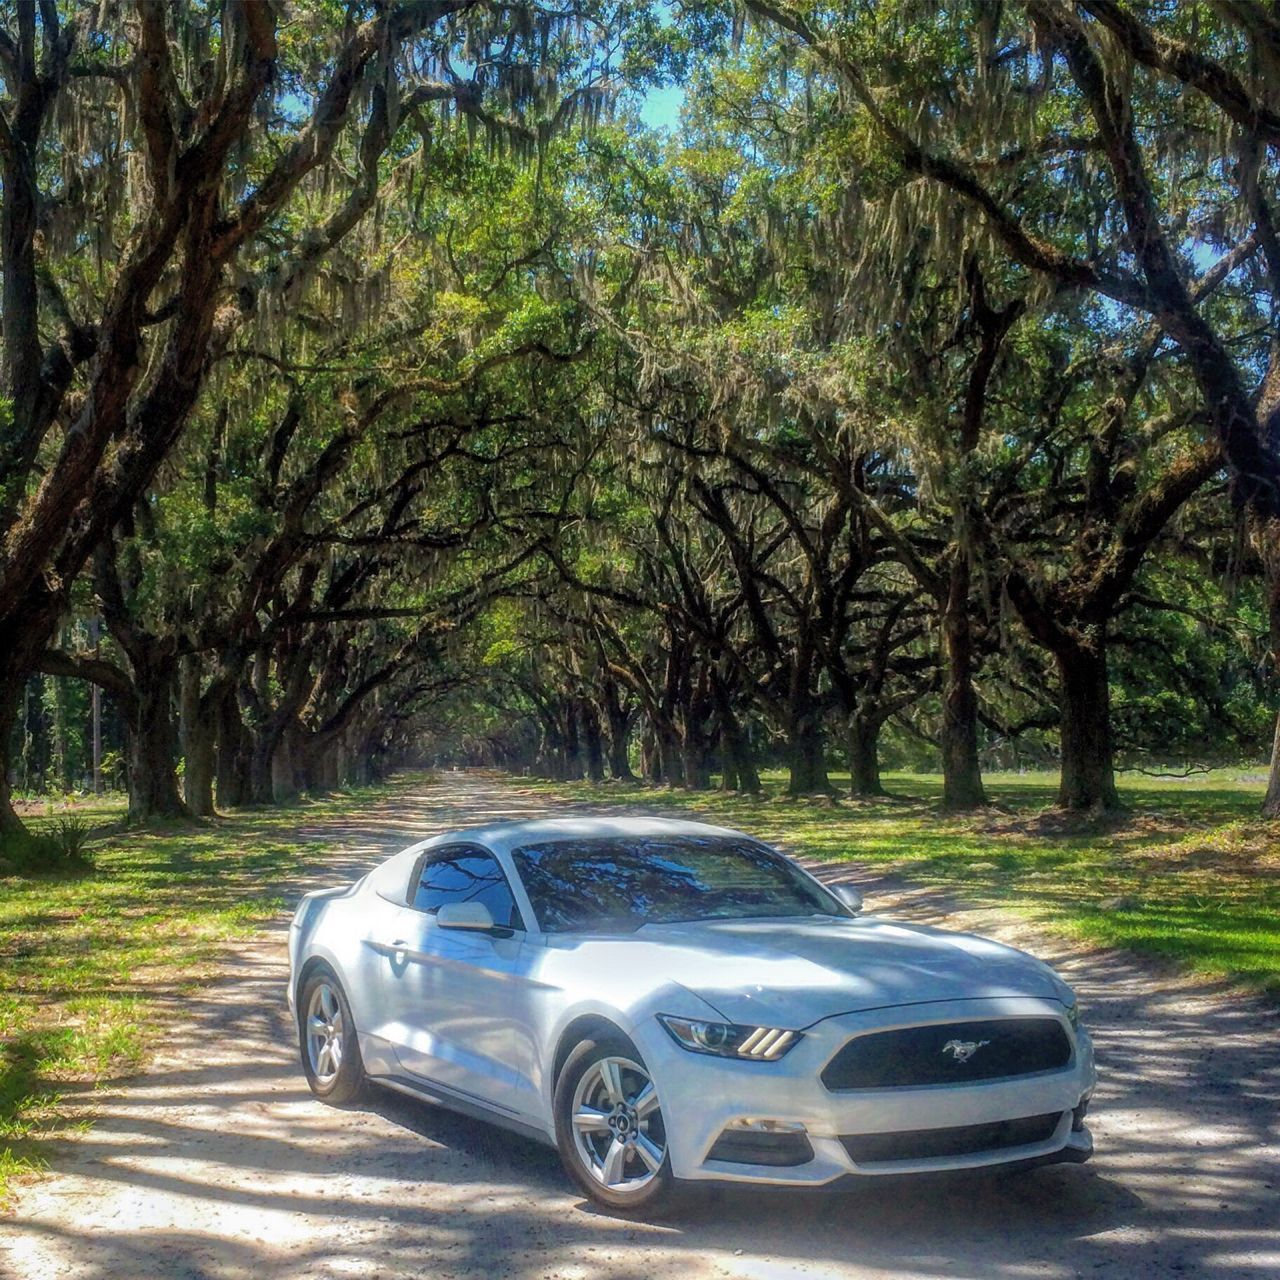 Tree Car Transportation Land Vehicle Mode Of Transport Sports Car Nature No People Outdoors Day Ford Mustang Ford Mustang 2015  Photography Photooftheday History Savannah Georgia